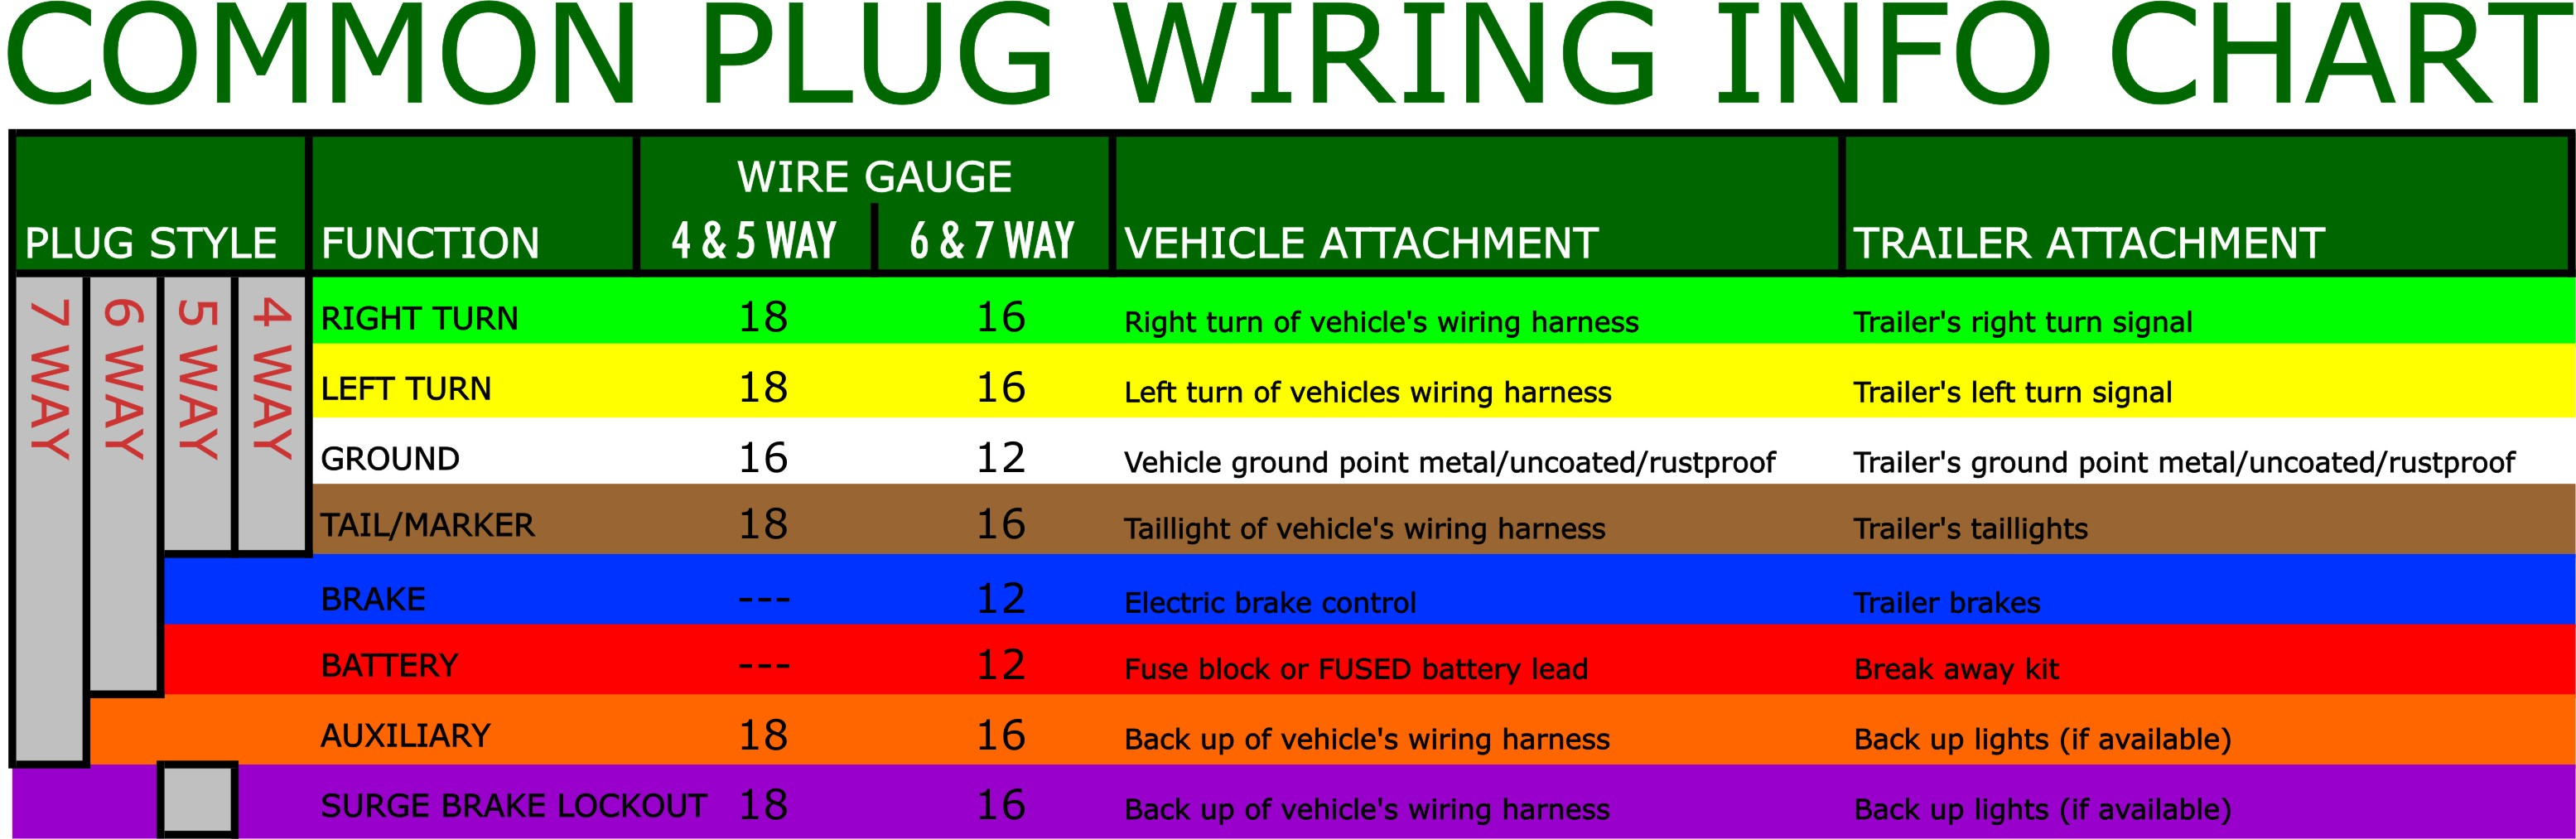 What Are The Most Common Trailer Plugs? - 4 Way Connector Trailer Wiring Diagram